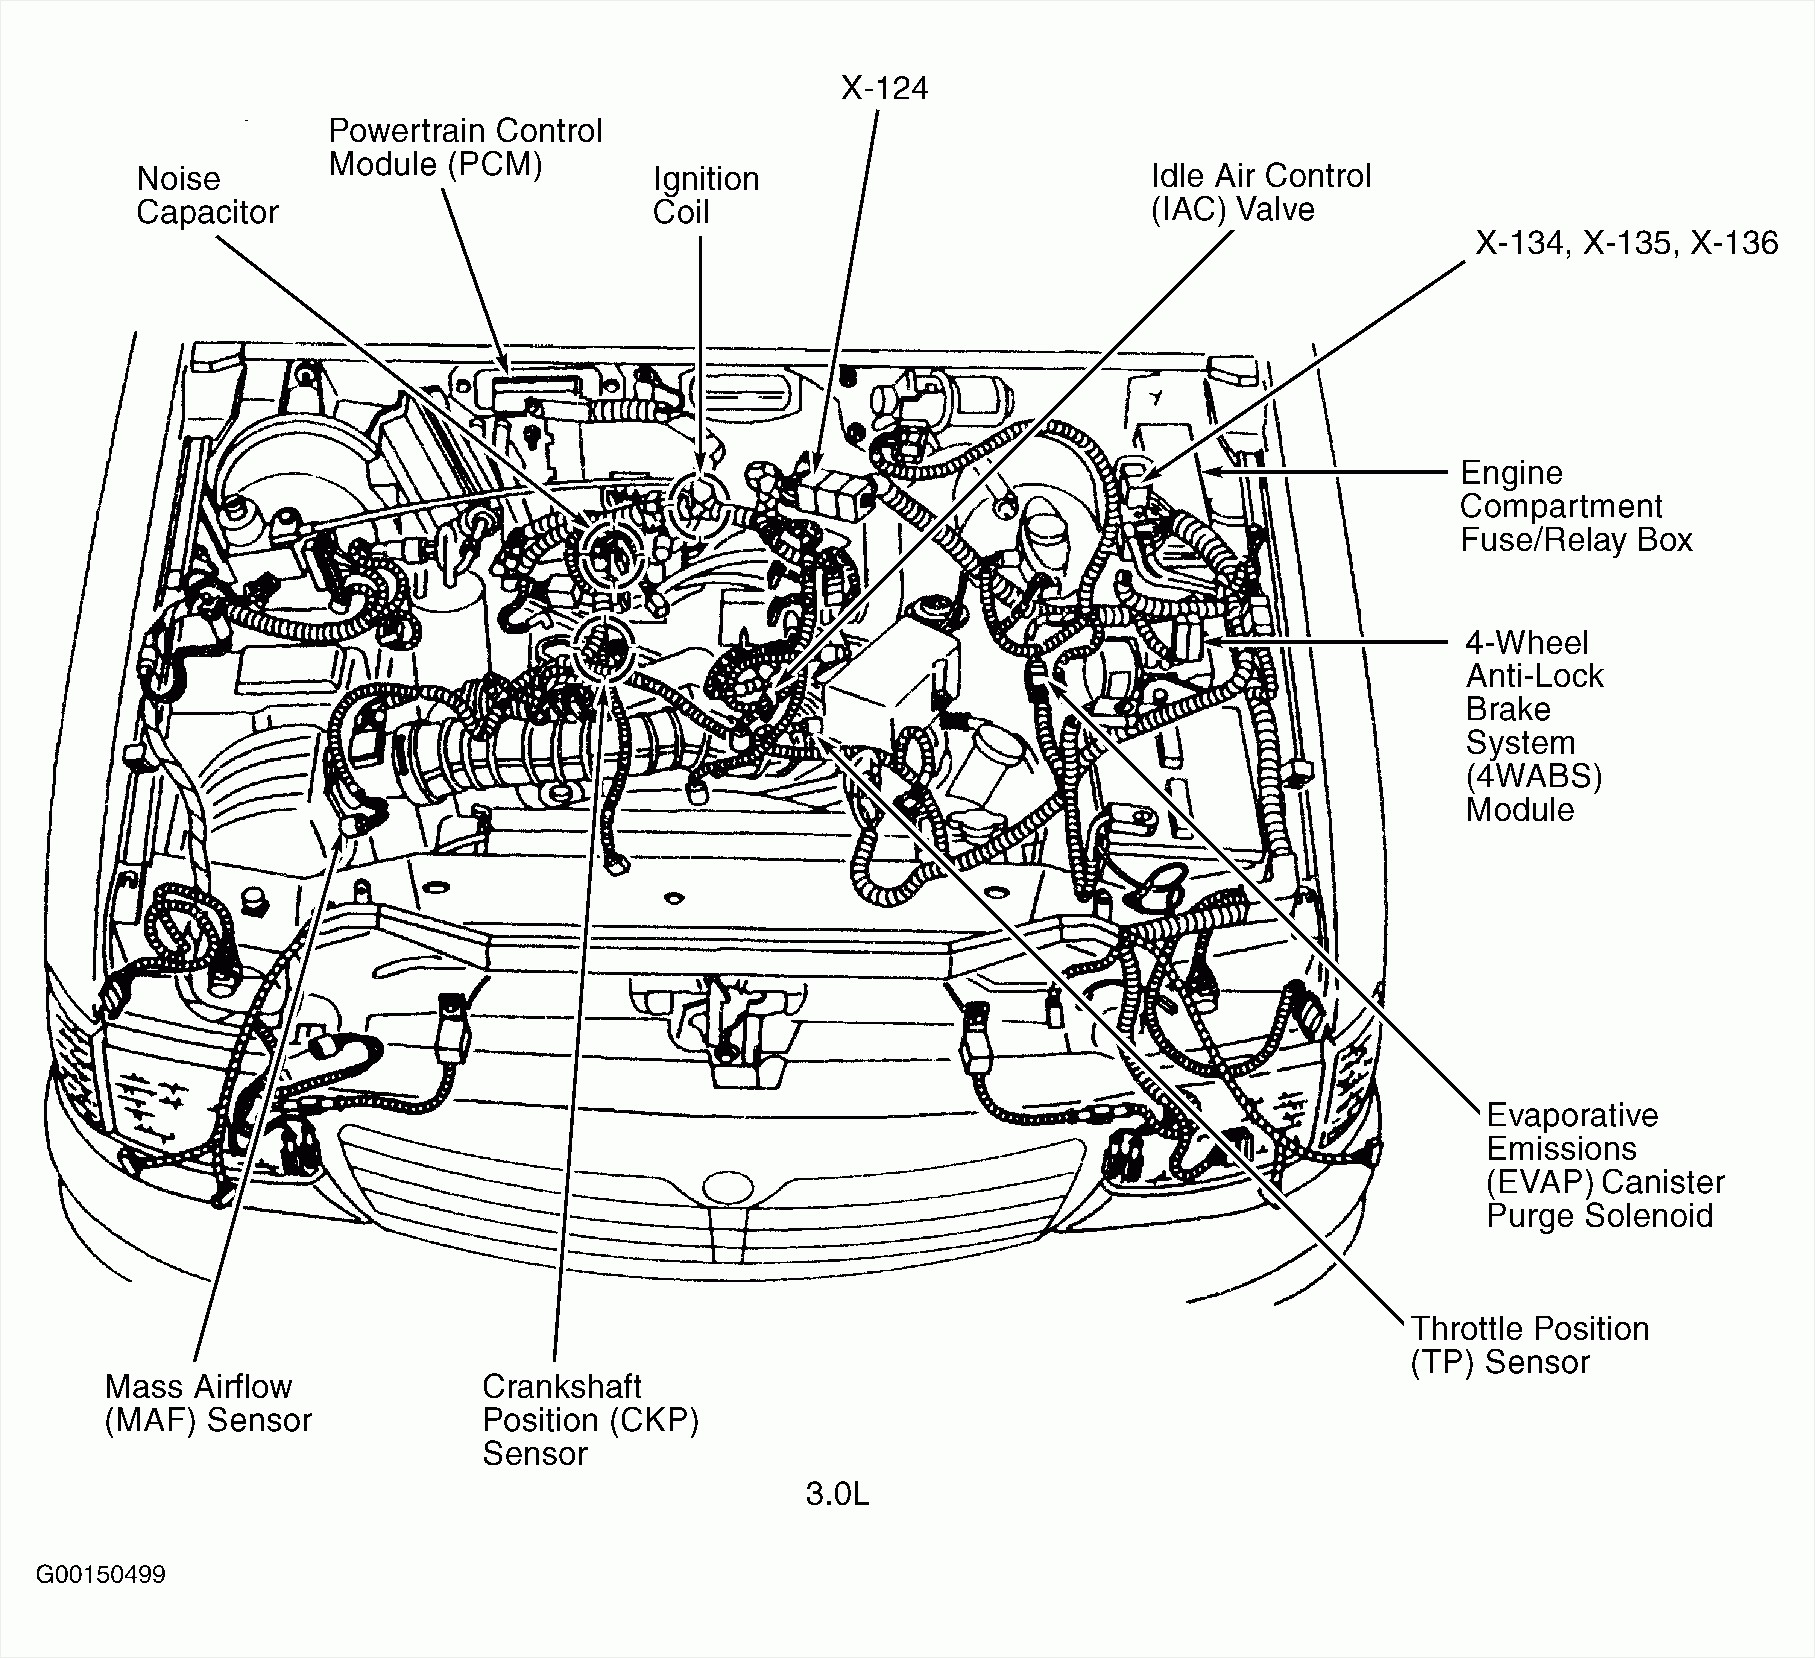 ford 3 8l engine diagram automotive wiring diagrams rh 27 kindertagespflege elfenkinder de Ford 3.0L Engine Diagram 2000 Ford Mustang V6